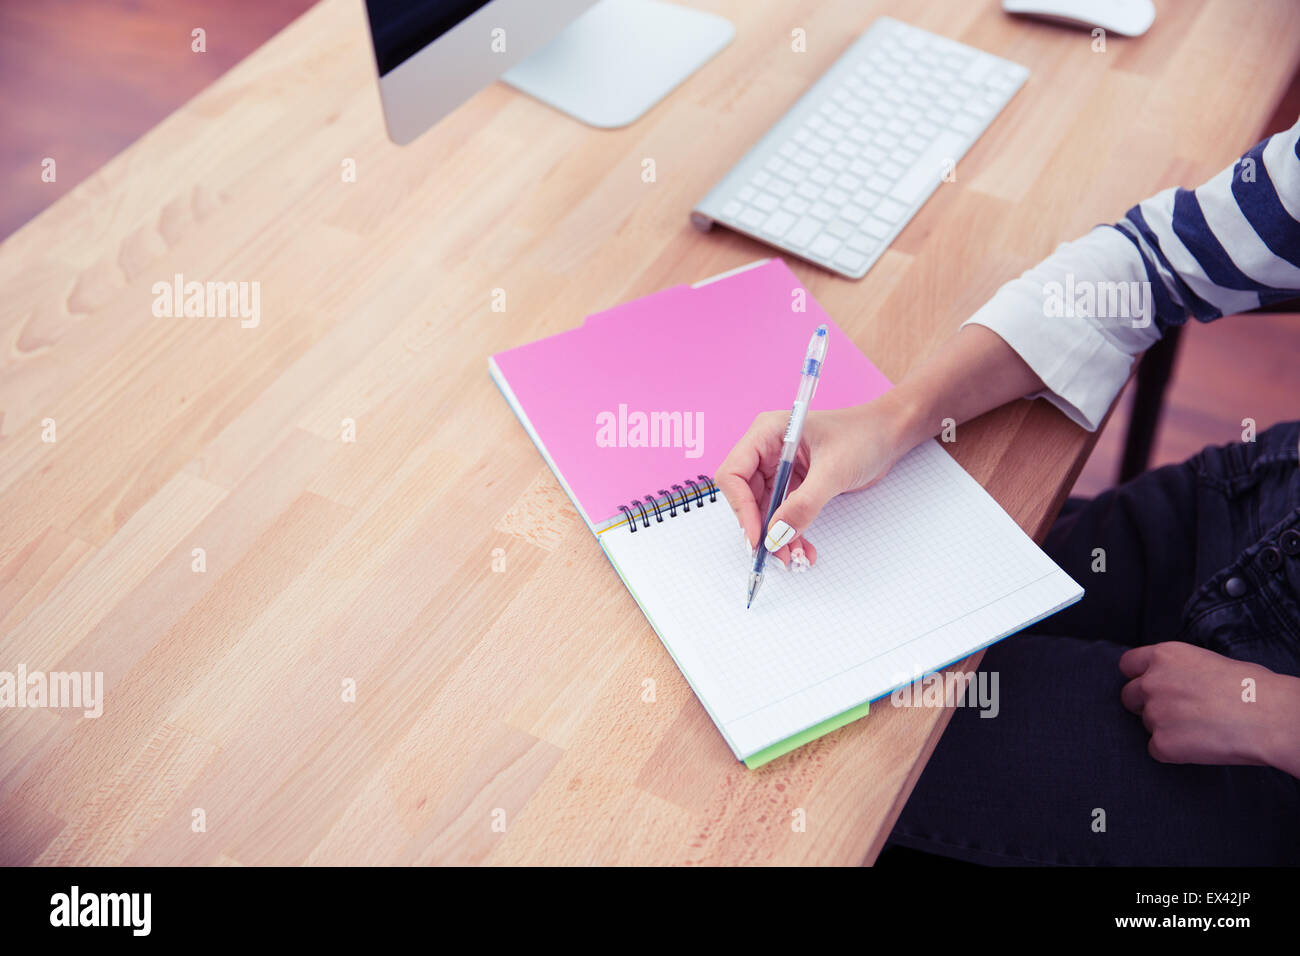 Closeup portrait of a girl writing notes in office - Stock Image